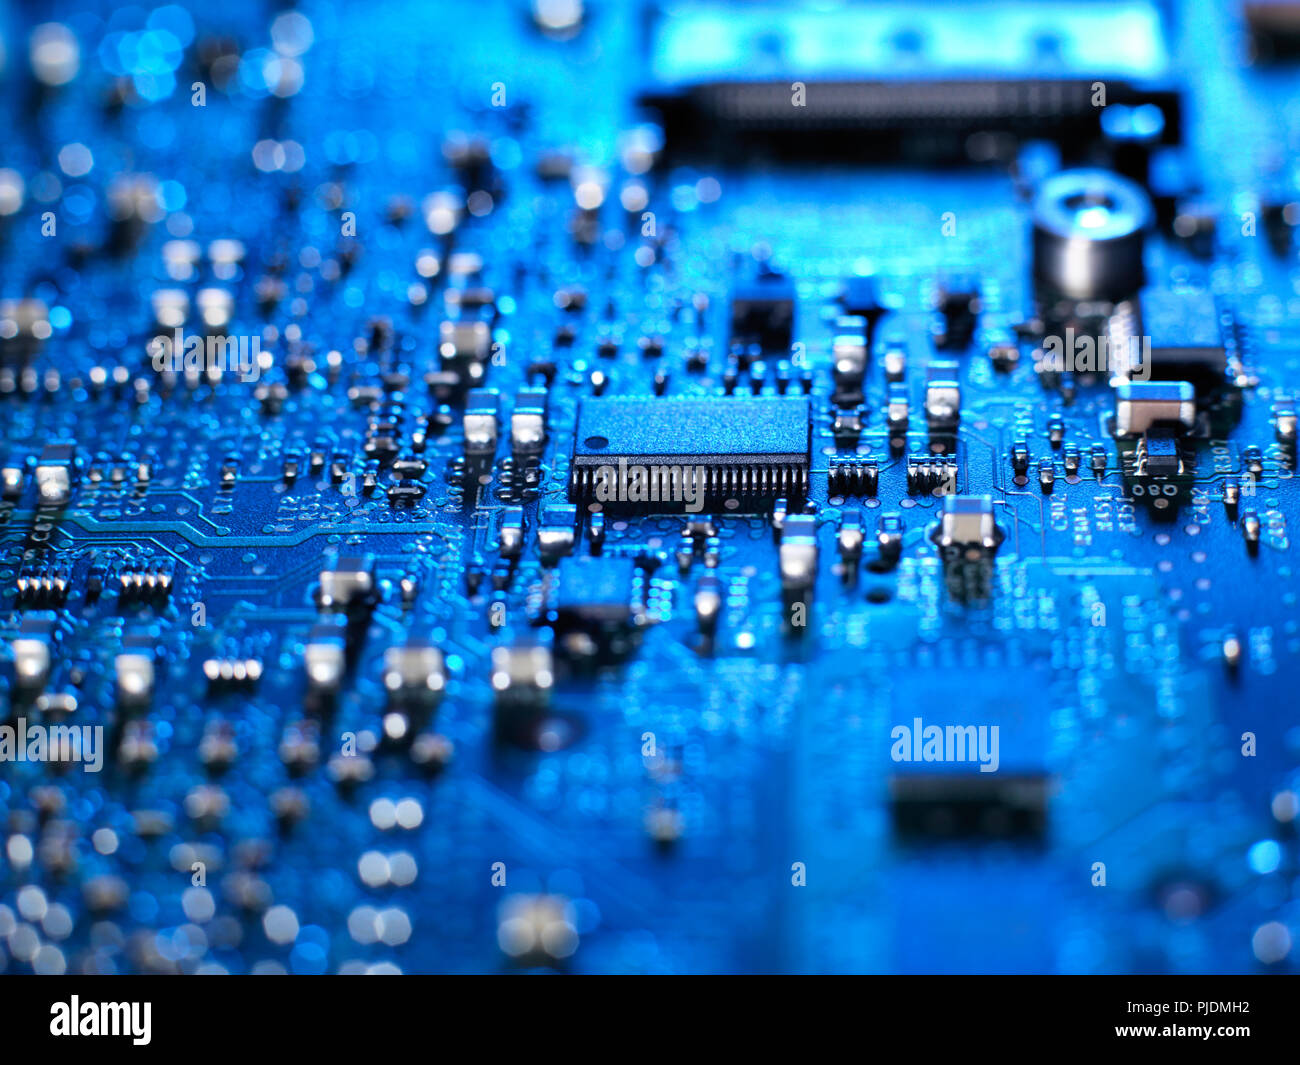 Inside Of A Laptop Computer Showing Chips Circuit Boards And Board With Electronic Components Stock Photo